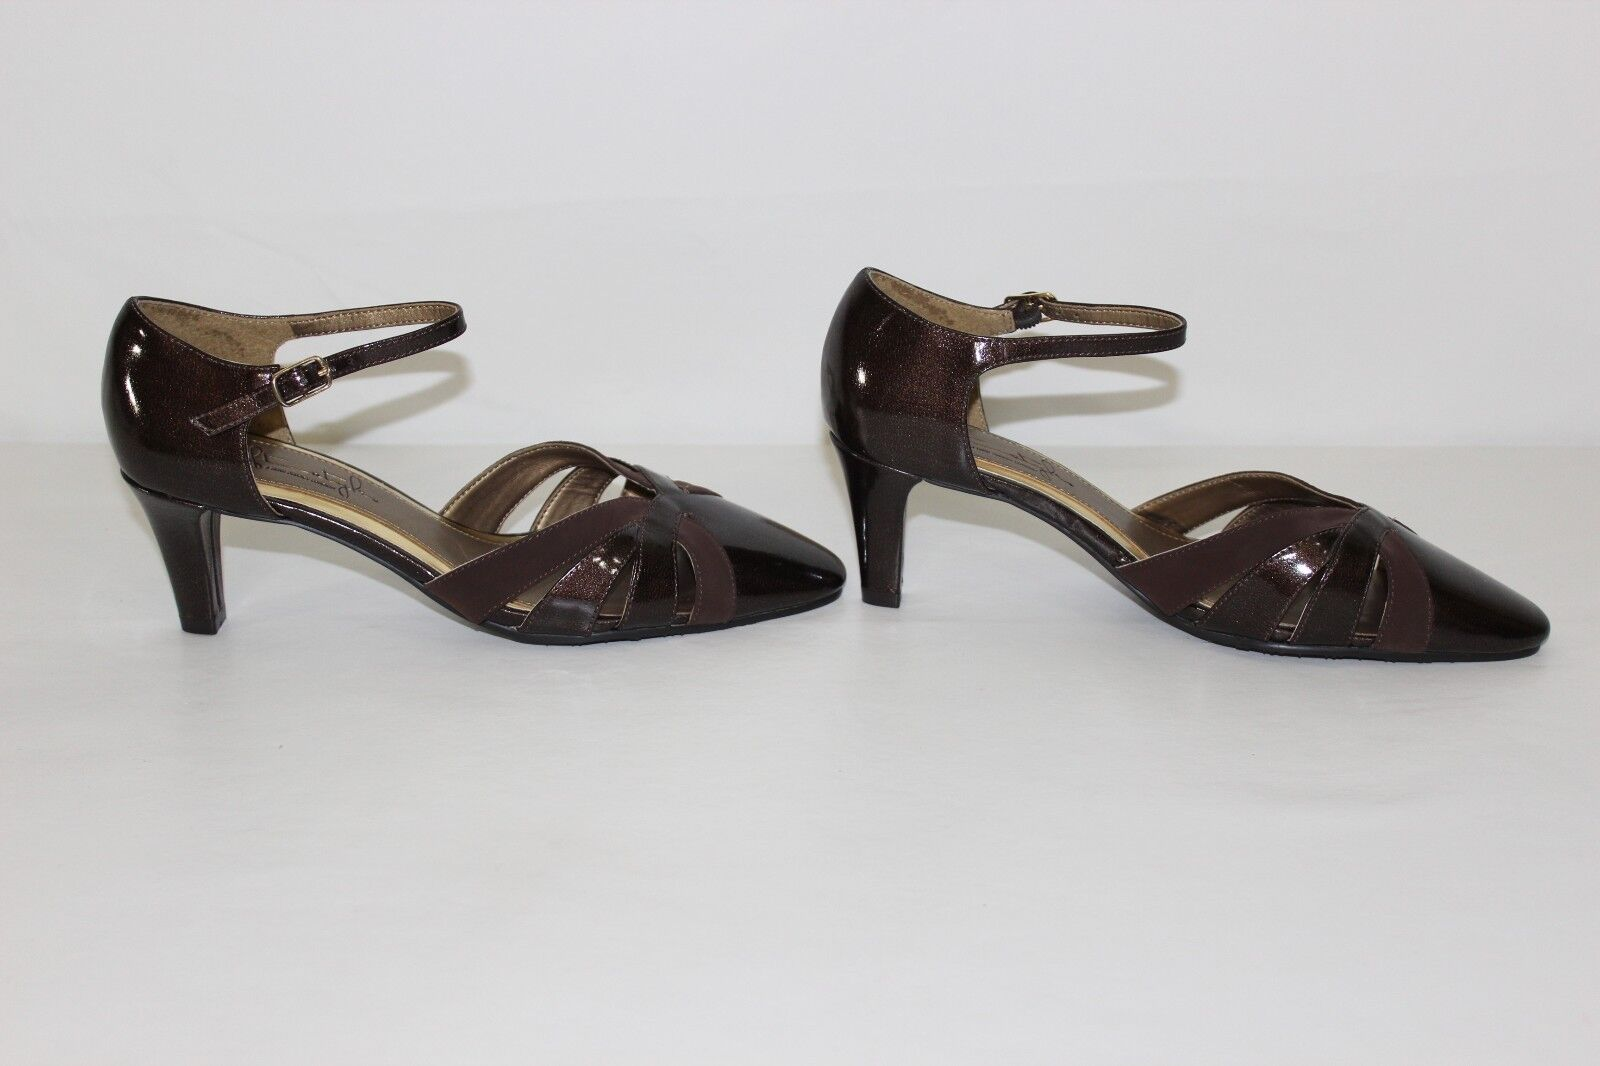 Soft Sz Style Hush Puppies Womens Sz Soft 6.5 M Brown Strappy High Heels Pumps Shoes NEW b86410